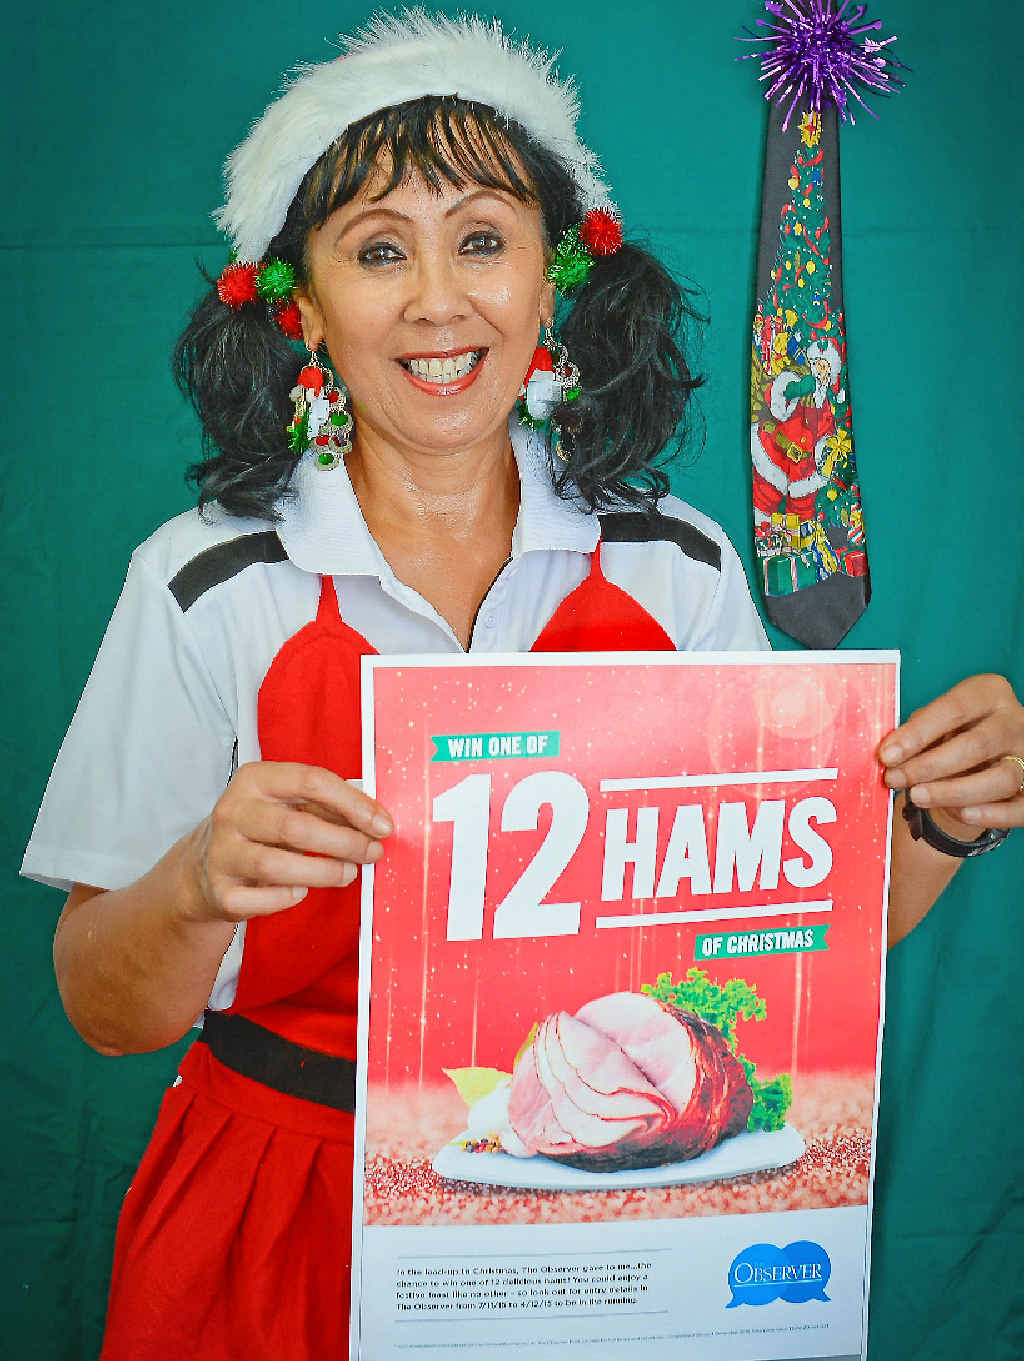 CHRISTMAS HAM: Cheryl Royal-Scott decks the halls with our Christmas ham giveaway posters.